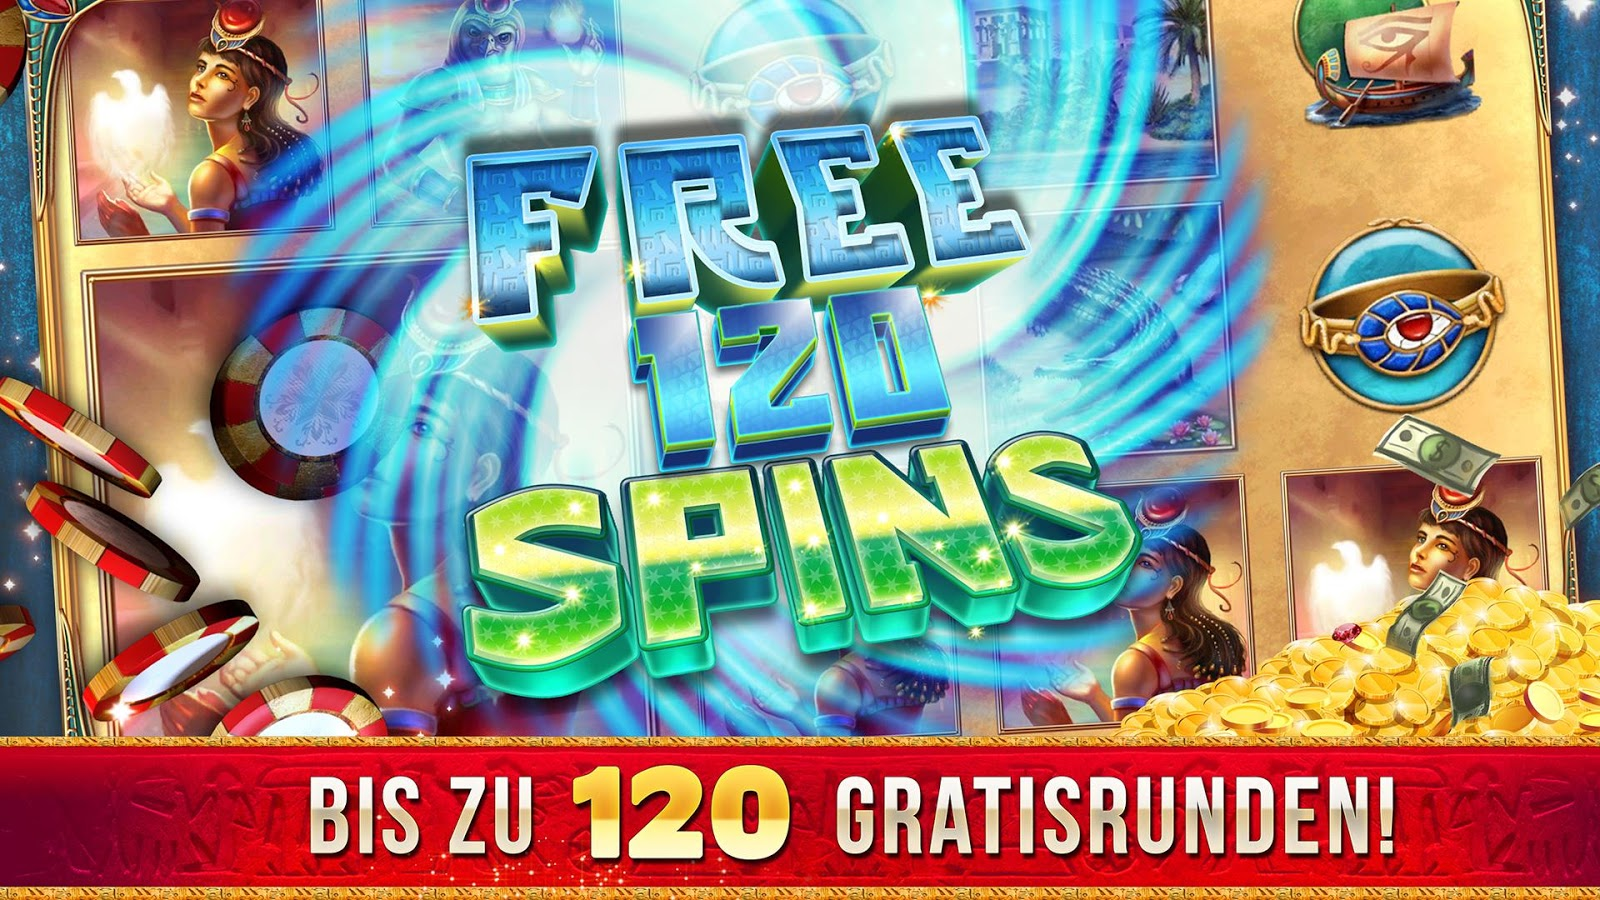 kasino.spiele.slot.of.fan